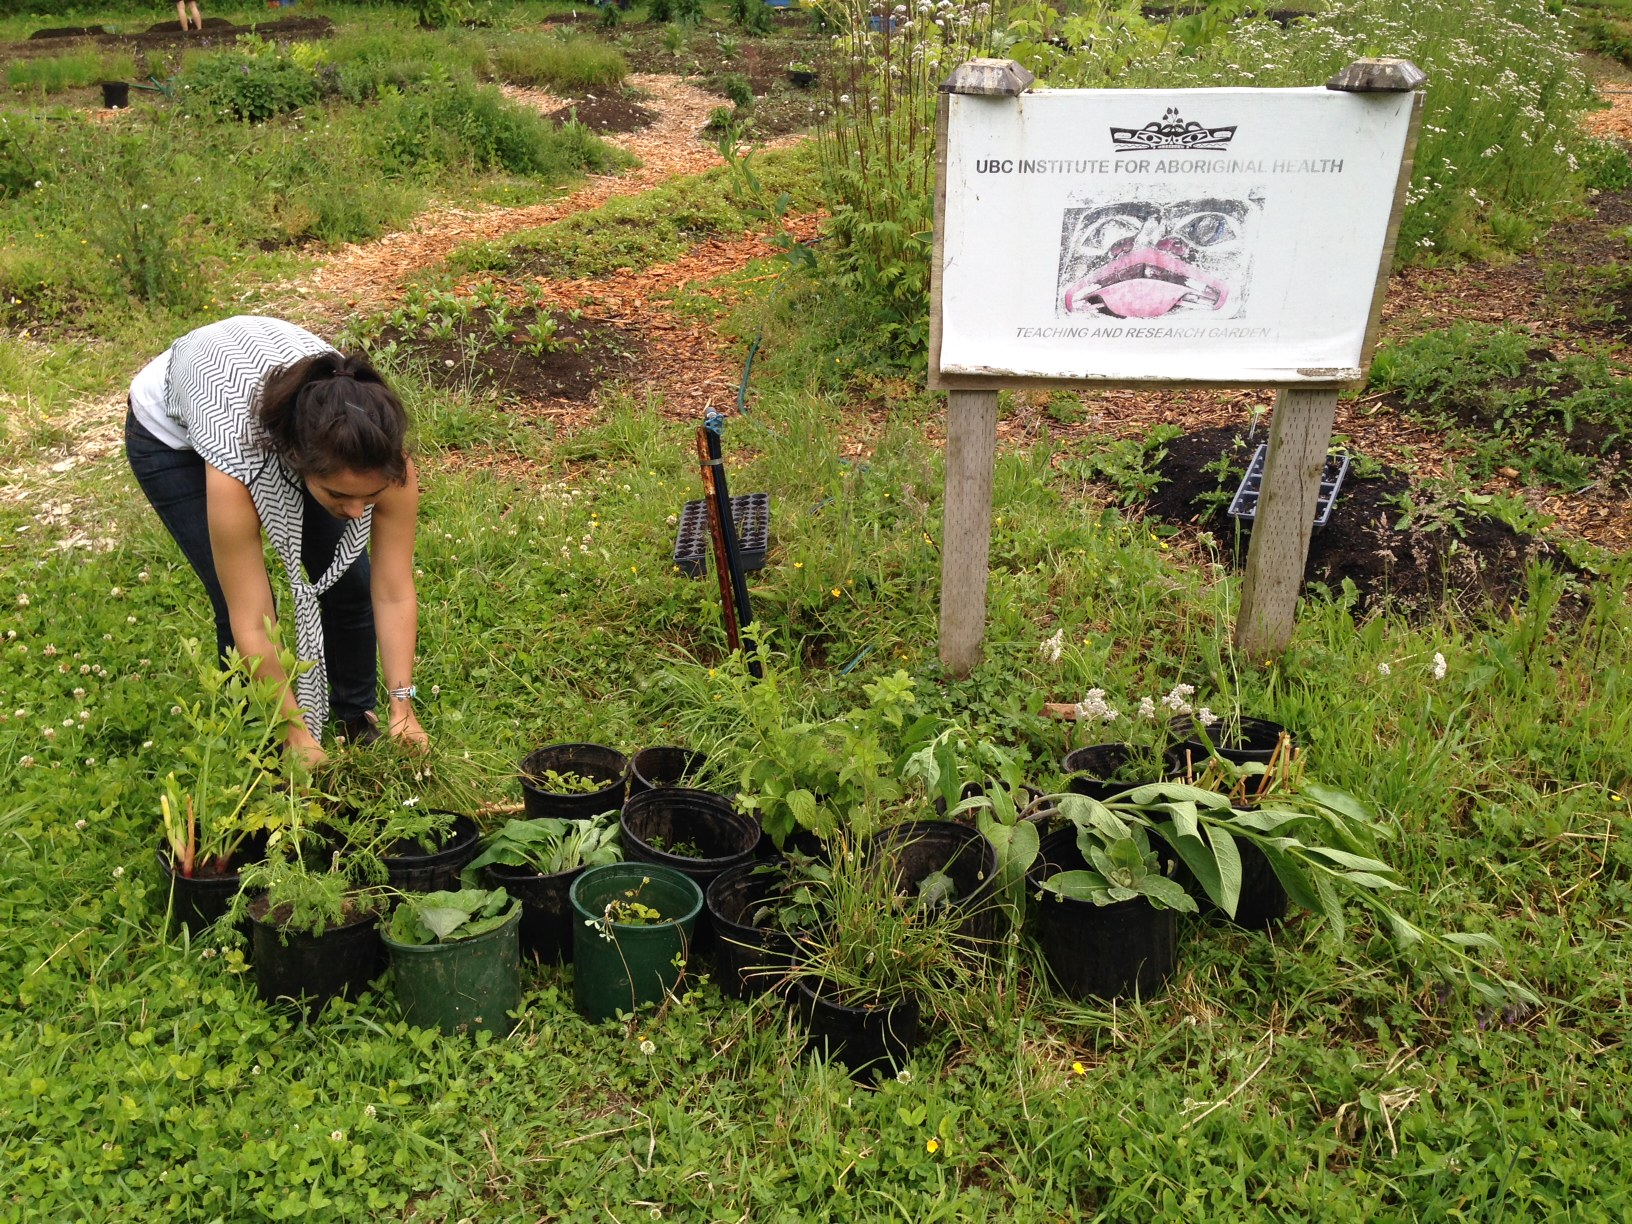 Preparing medicine plant donations for the Shíshálh First Nation with Intern Danette Jubinville, photo by Erica Baker